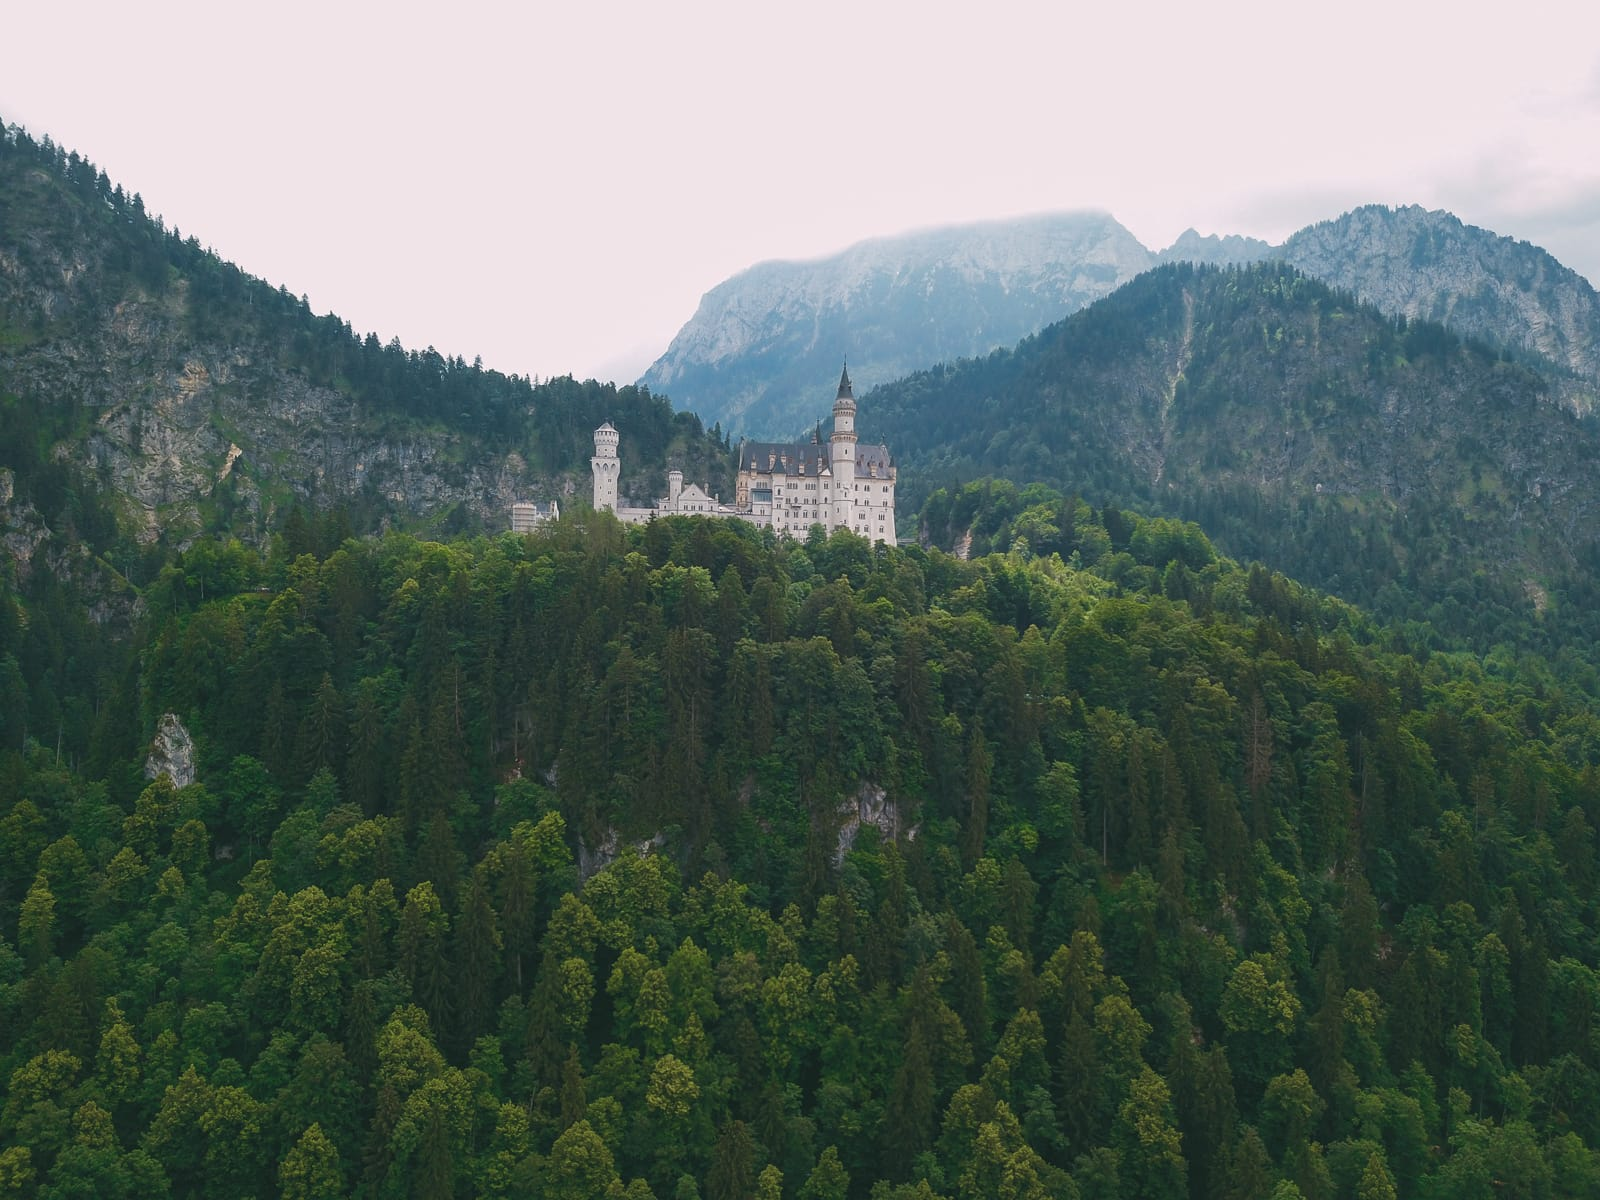 Neuschwanstein Castle - The Most Beautiful Fairytale Castle In Germany You Definitely Have To Visit! (1)